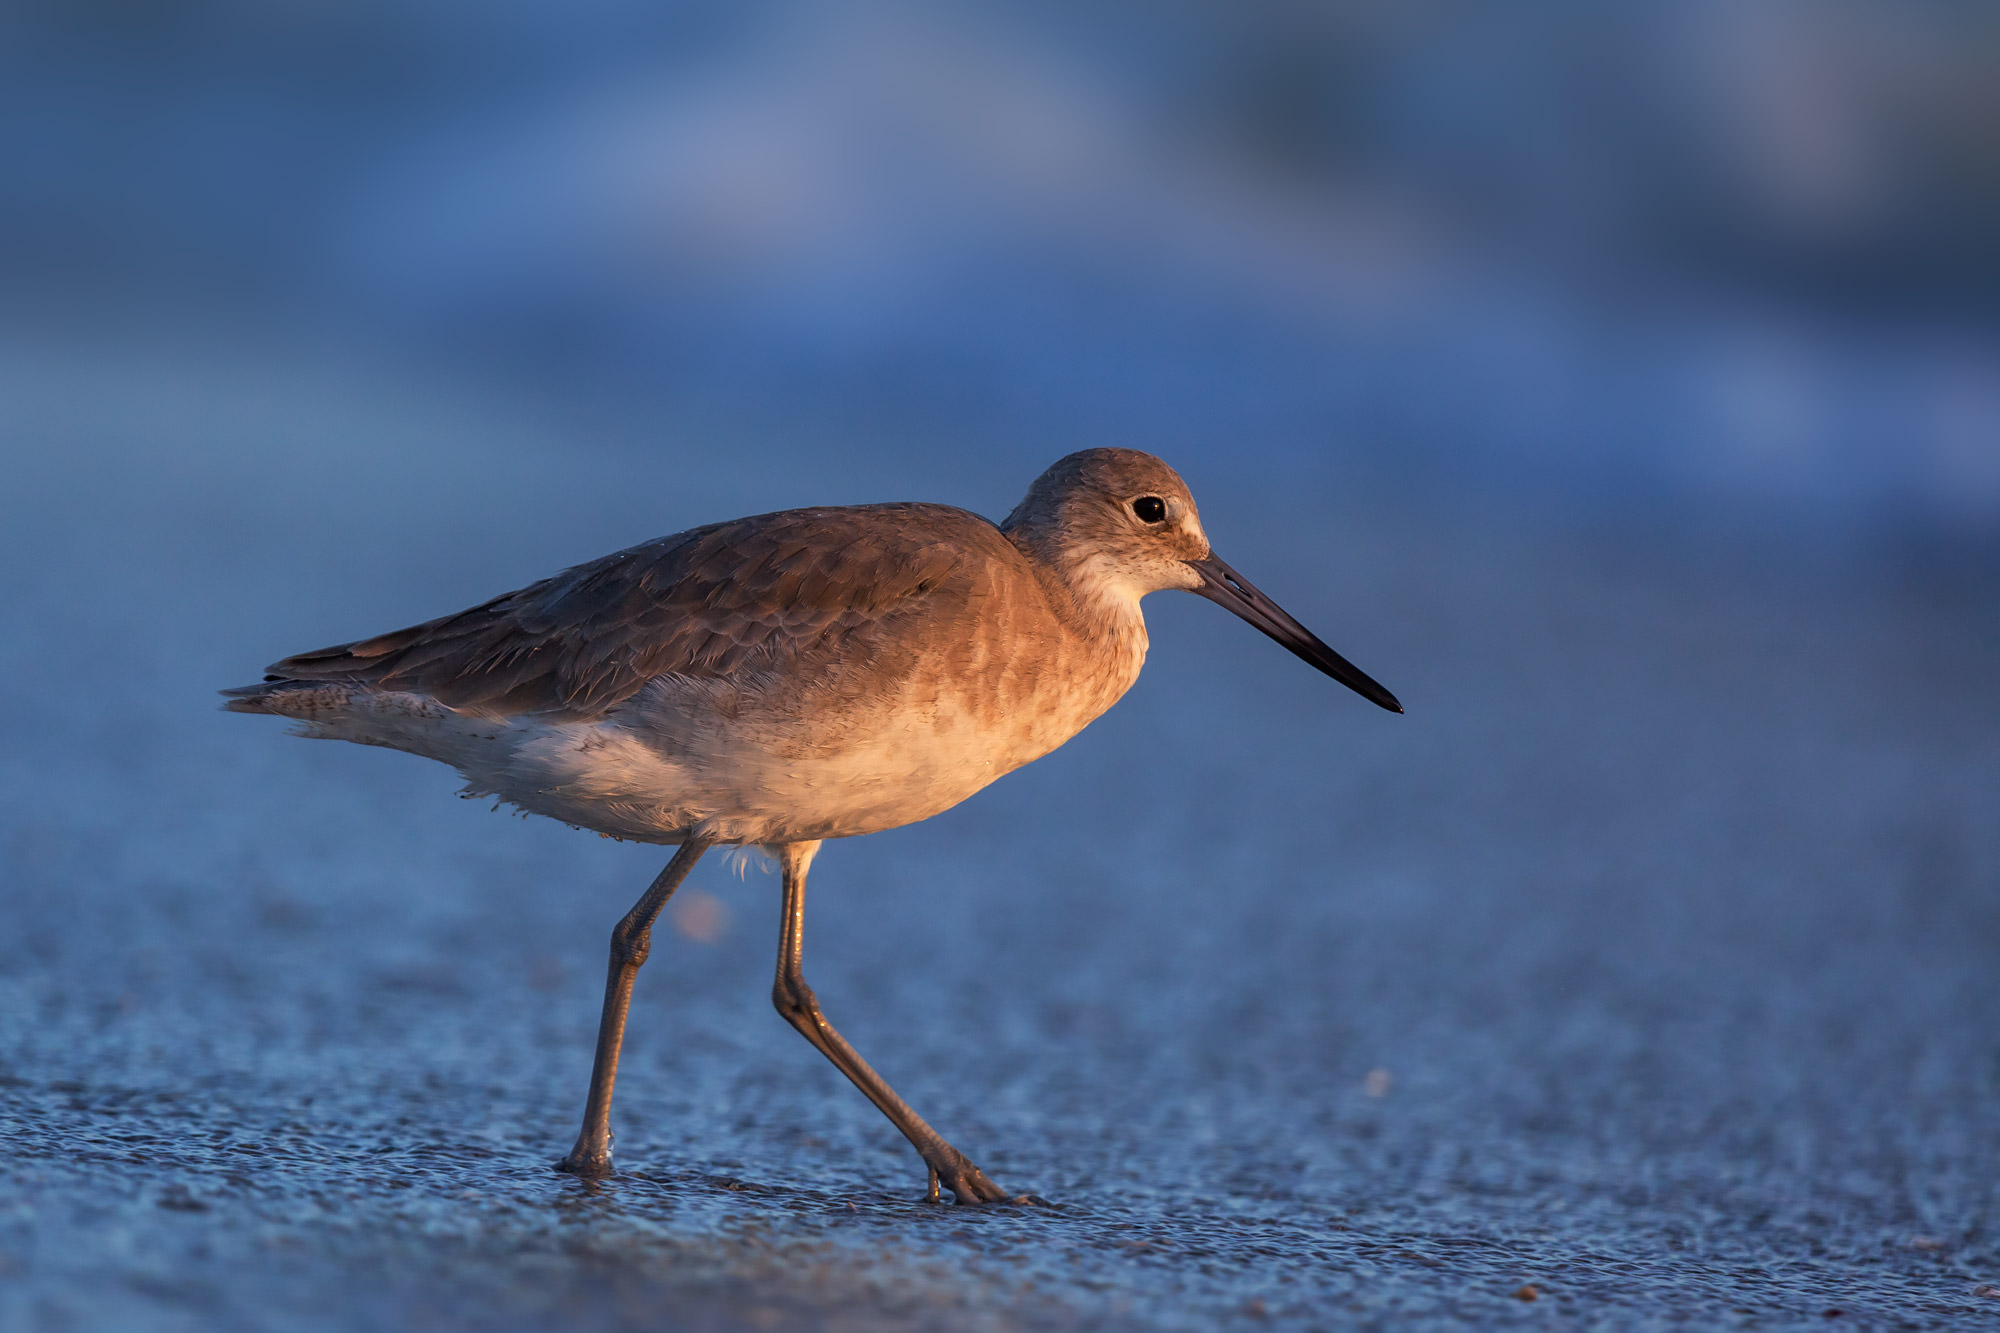 Shore Bird Fine Art Photography A Limited Edition photograph of a Willit on the beach approaching the water in Southwest Florida...